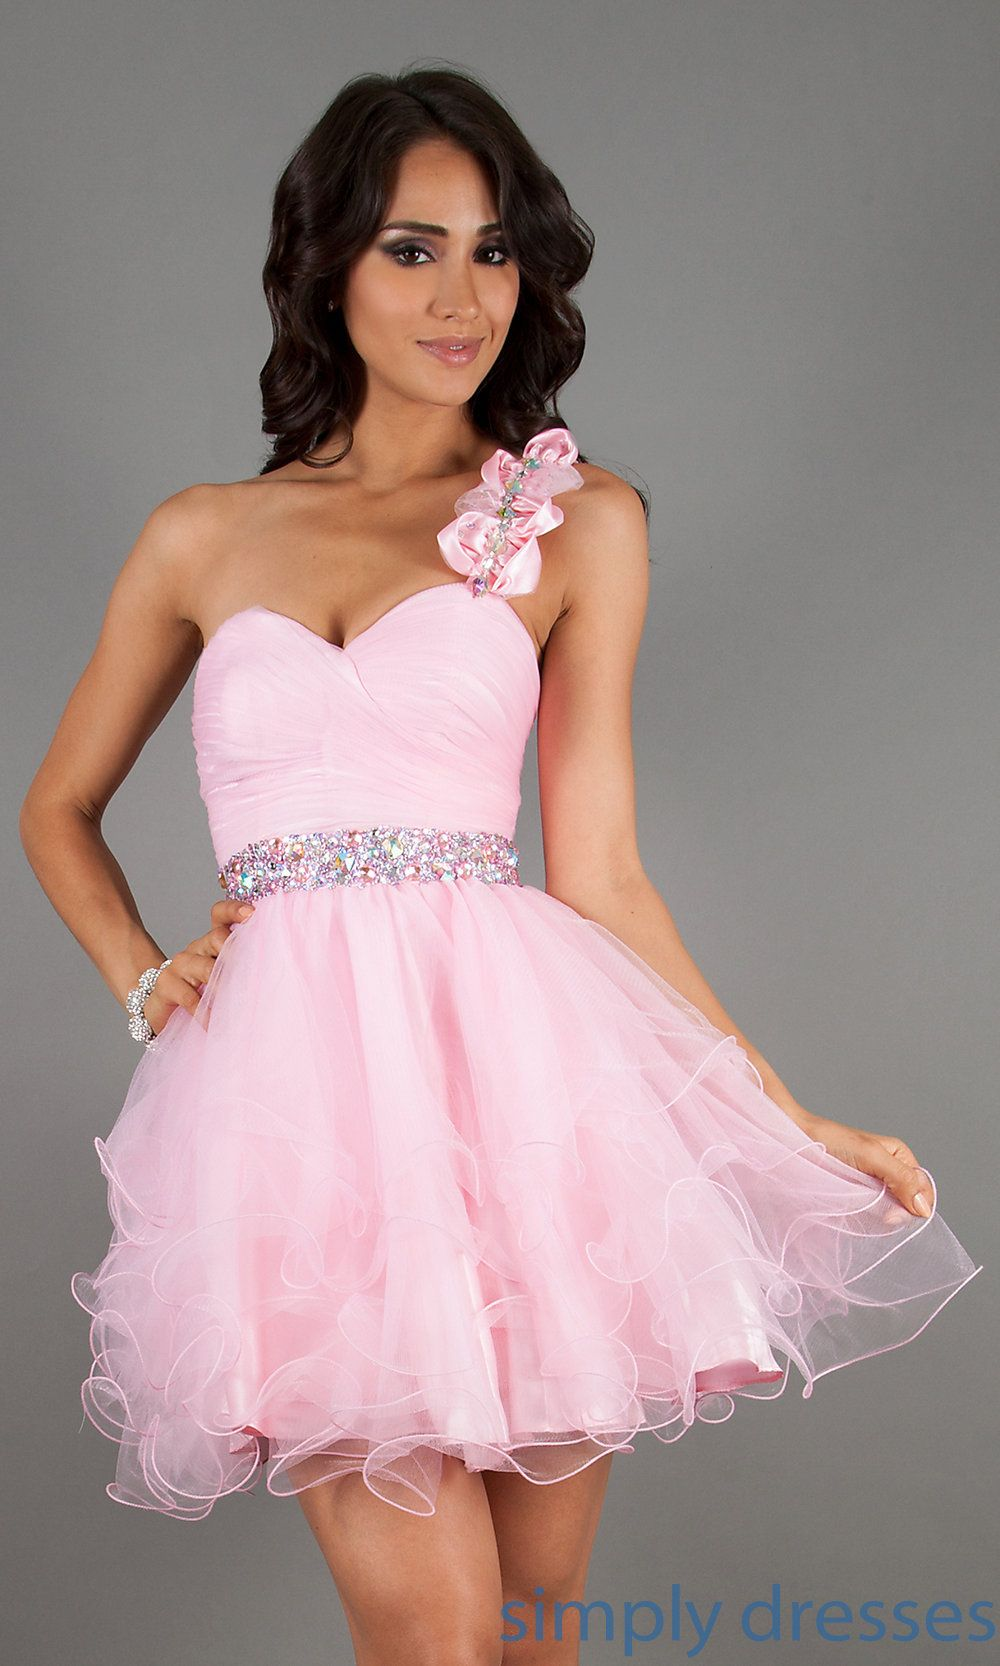 View Dress Detail: DQ-8426 | Homecoming Dresses for Mary | Pinterest